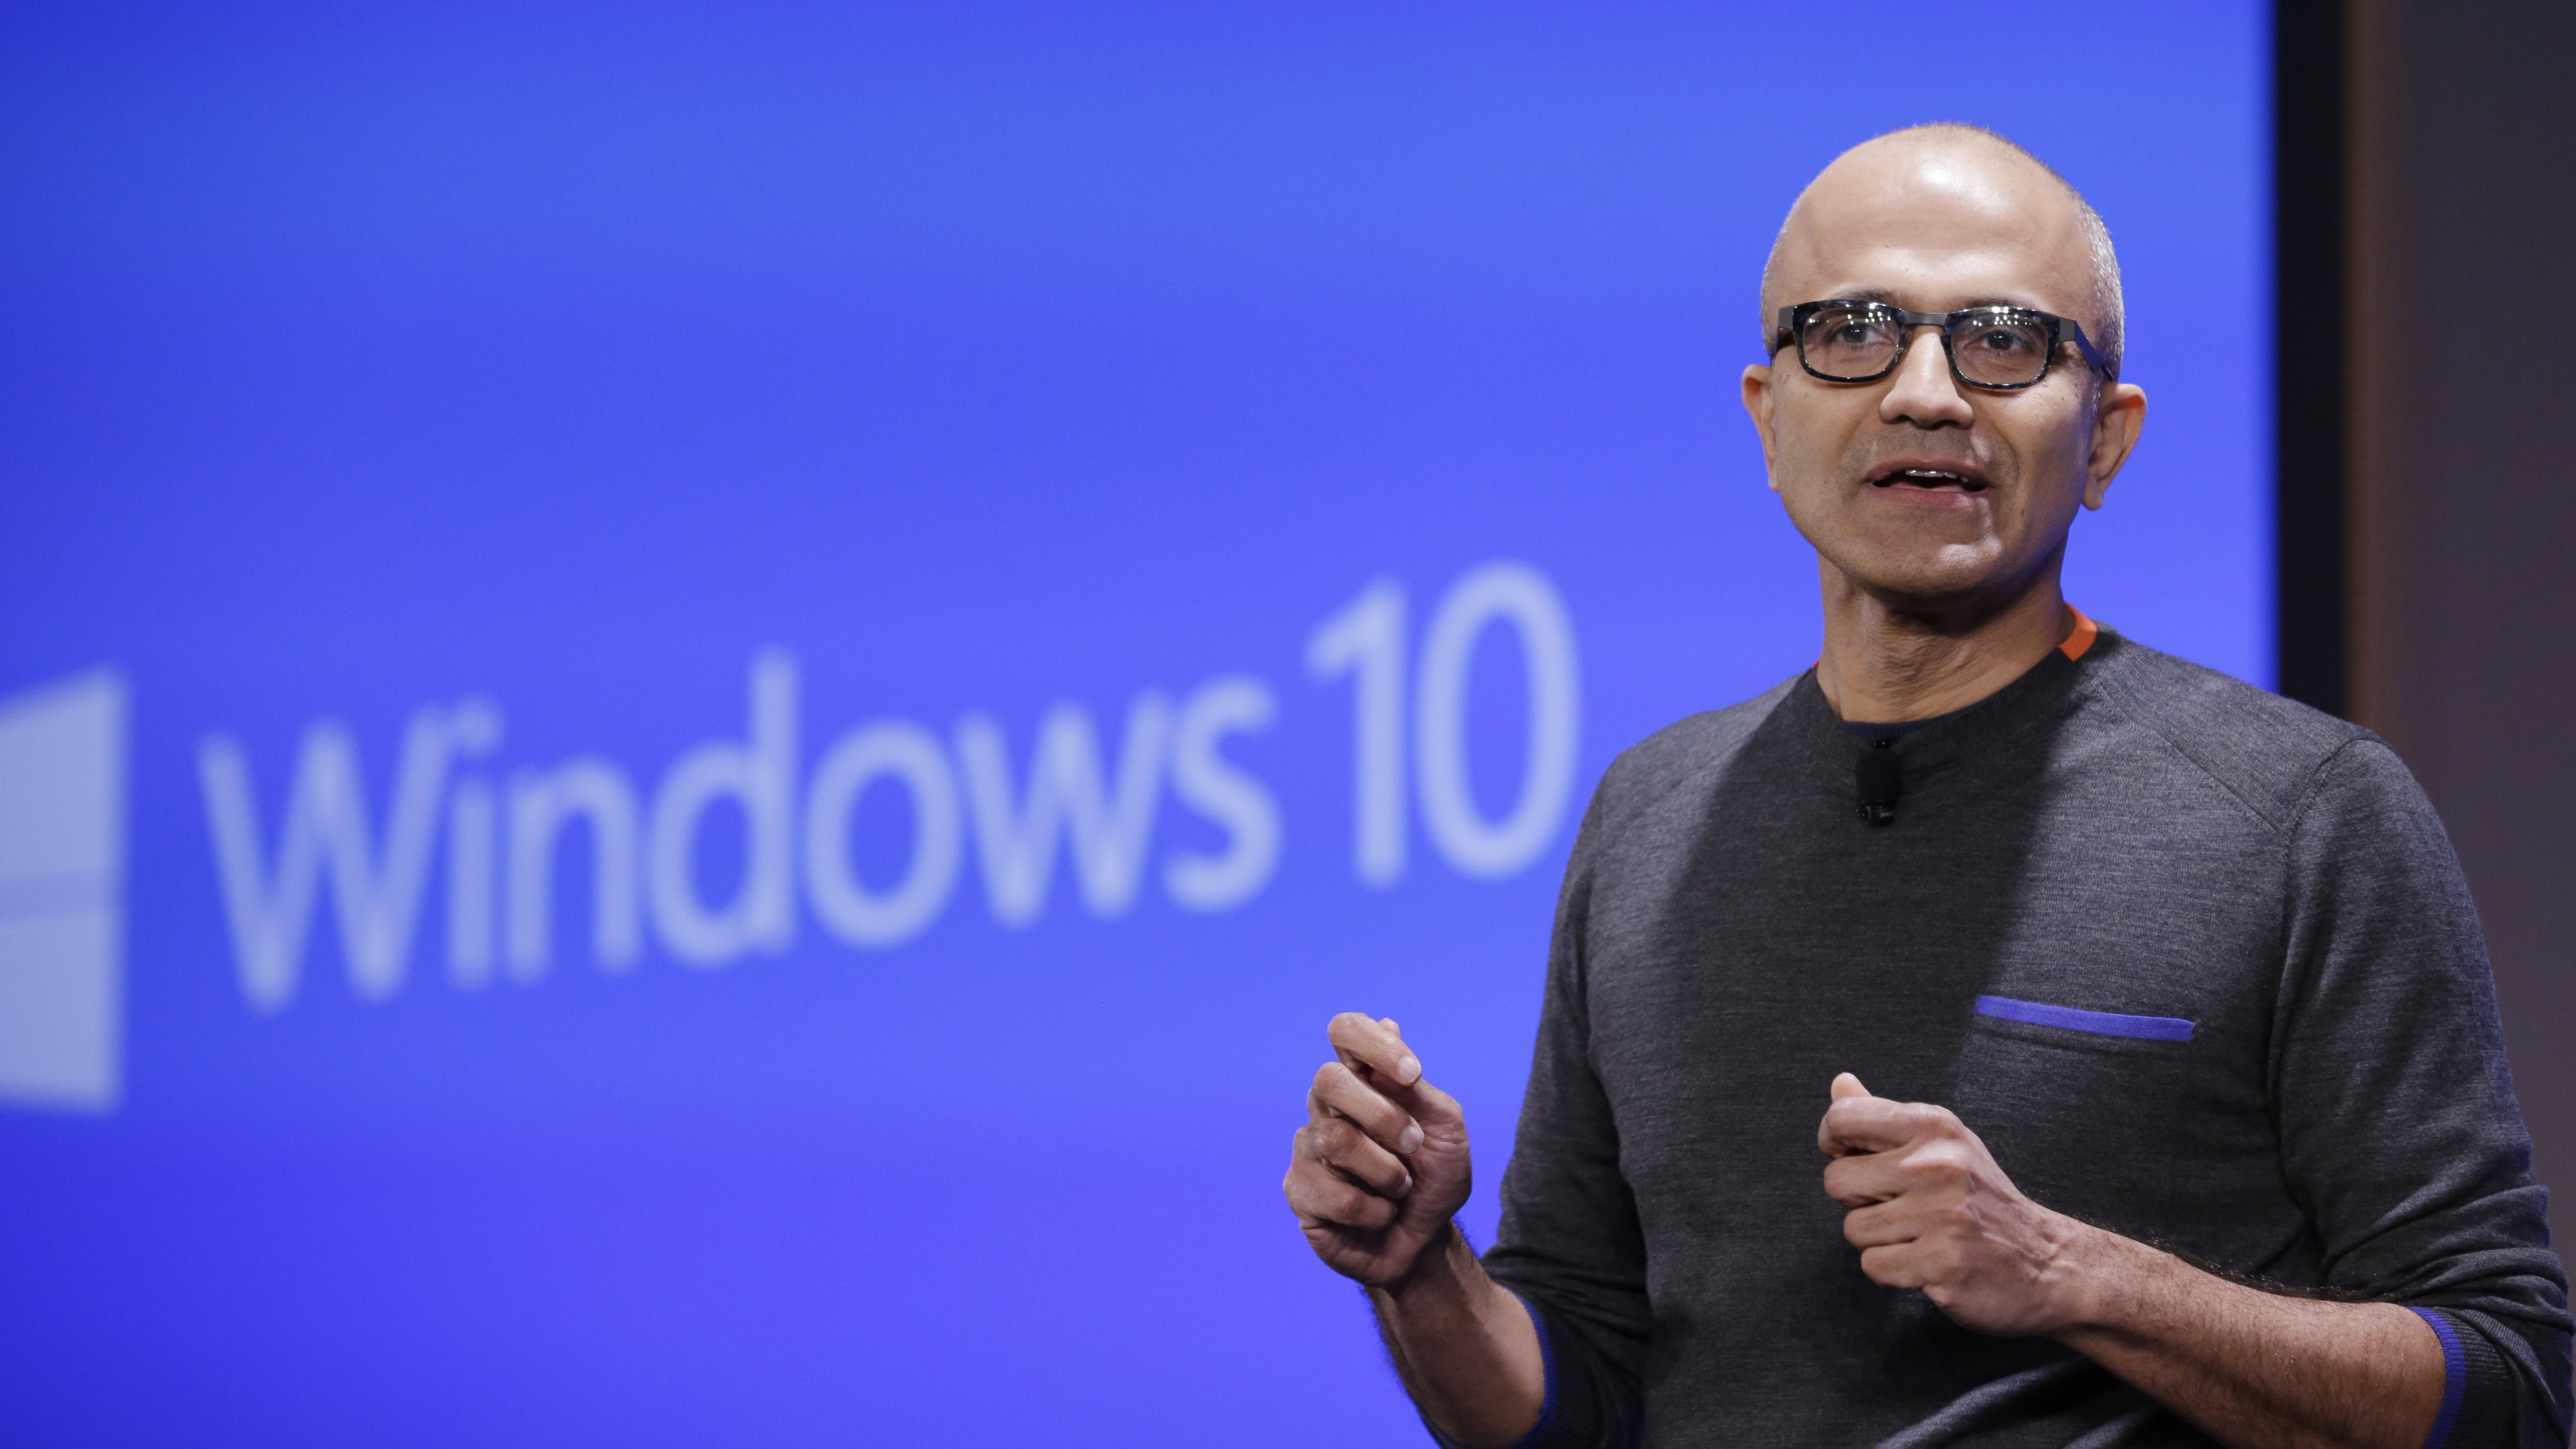 Microsoft CEO Satya Nadella speaks at an event demonstrating new features of its flagship operating system Windows at the company's headquarters Wednesday, Jan. 21, 2015, in Redmond, Wash. Executives demonstrated how they said the new Windows is designed to provide a more consistent experience and a common platform for software apps on different devices, from personal computers to tablets, smartphones and even the company's Xbox gaming console. (AP Photo/Elaine Thompson)